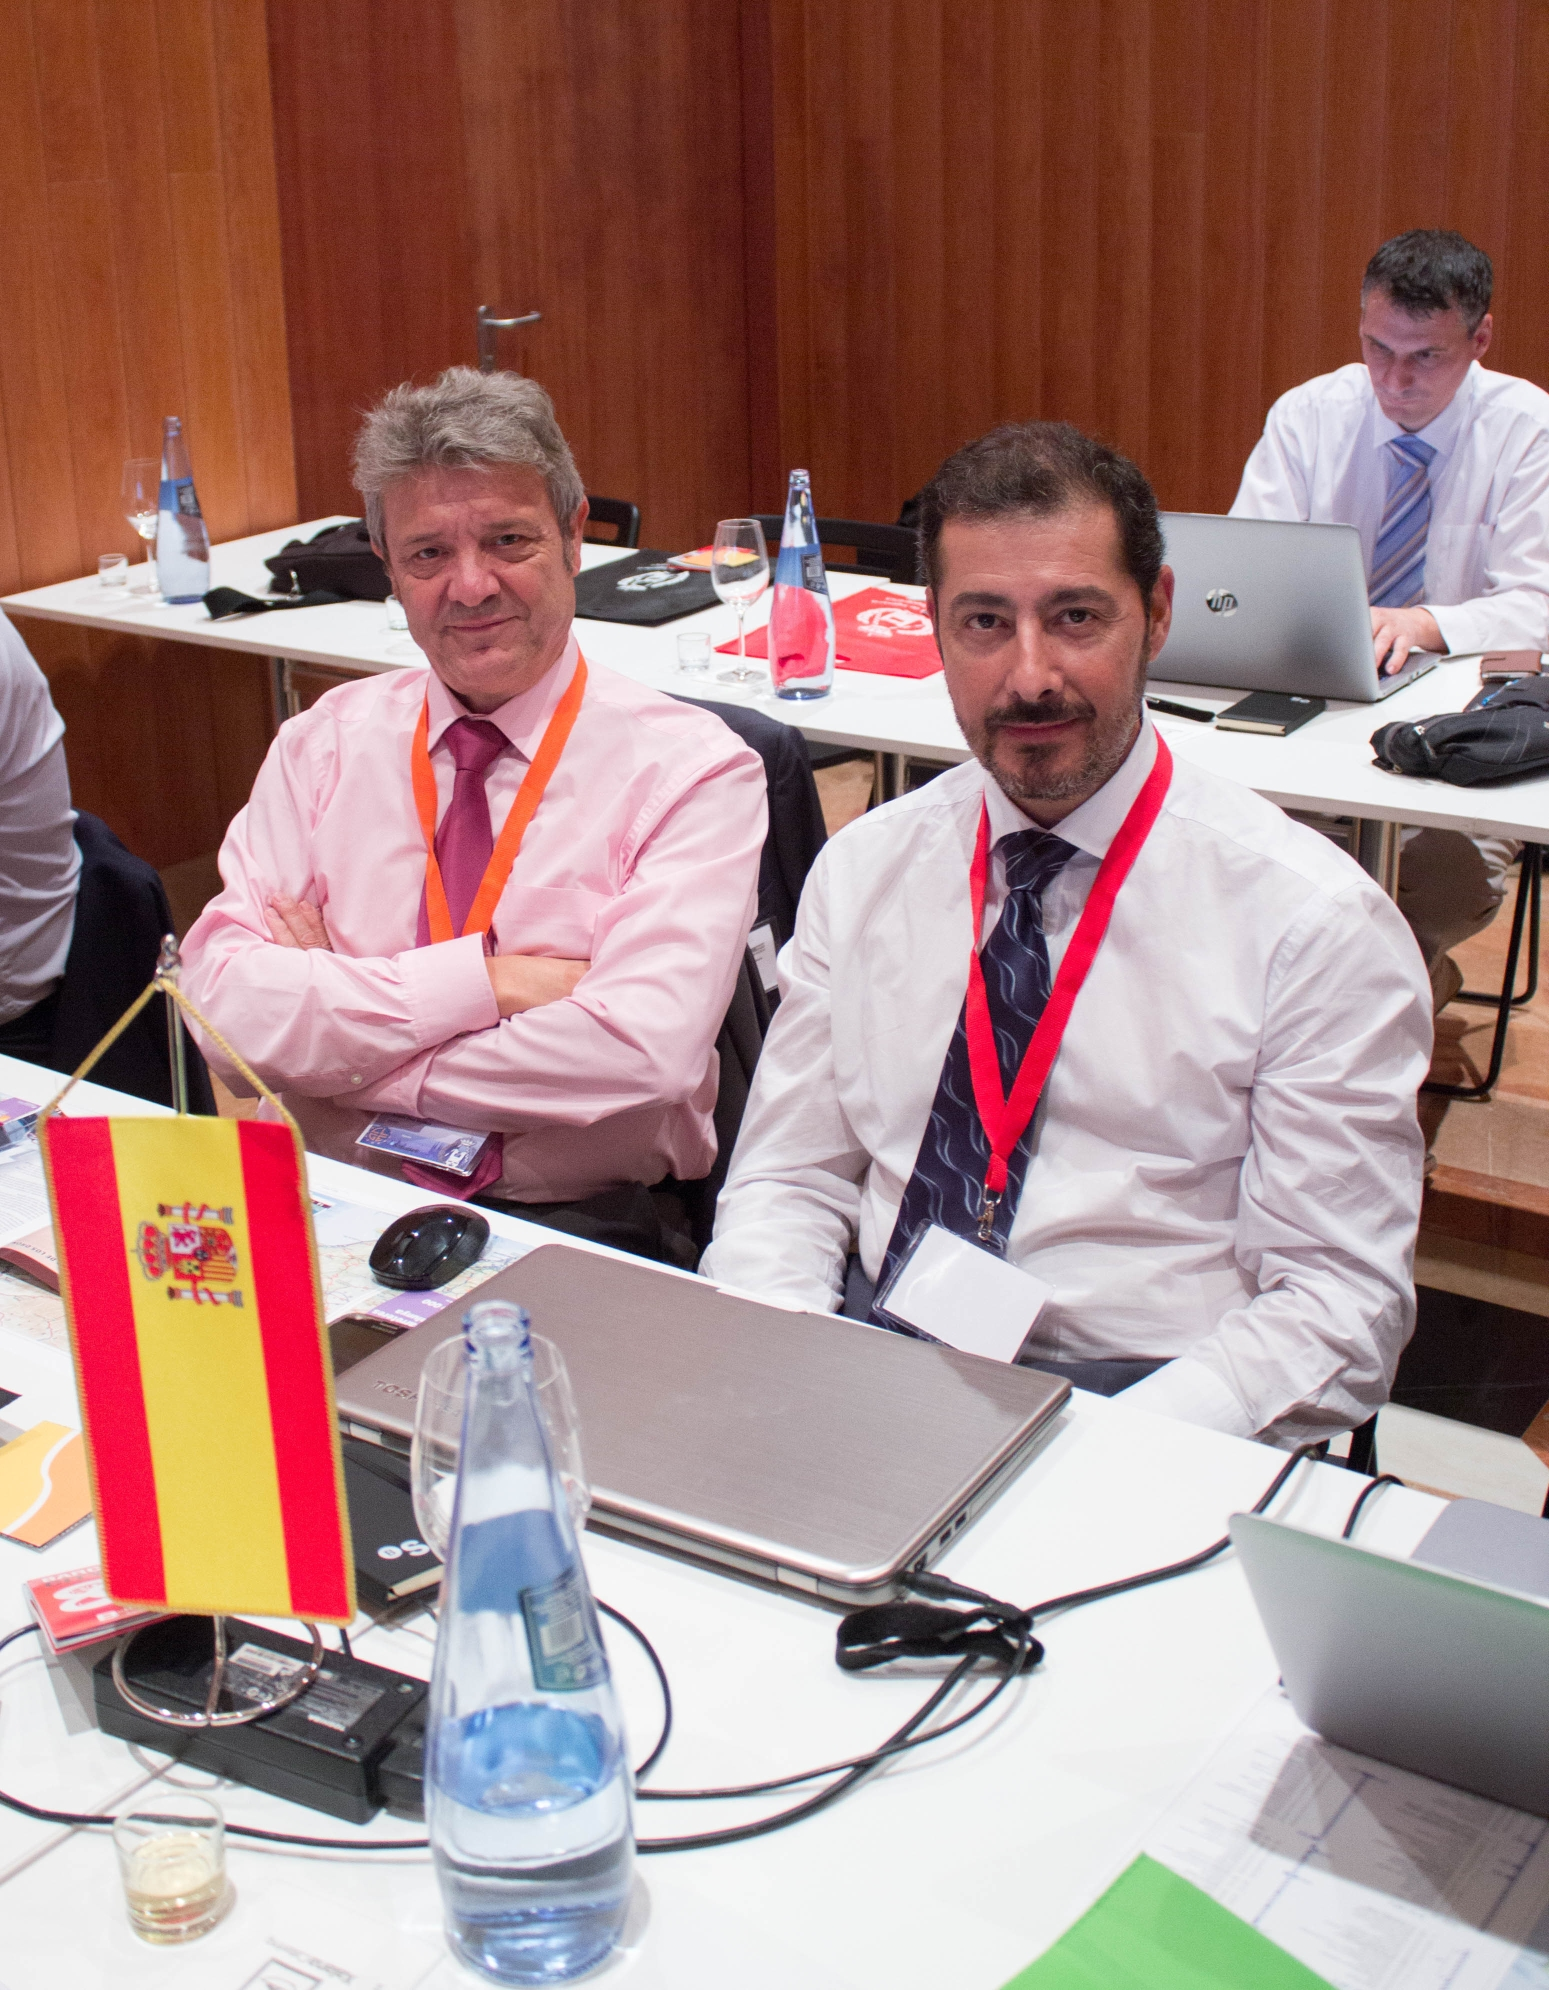 clge-general-assembly-barcelona-2018_44329718635_o.jpg